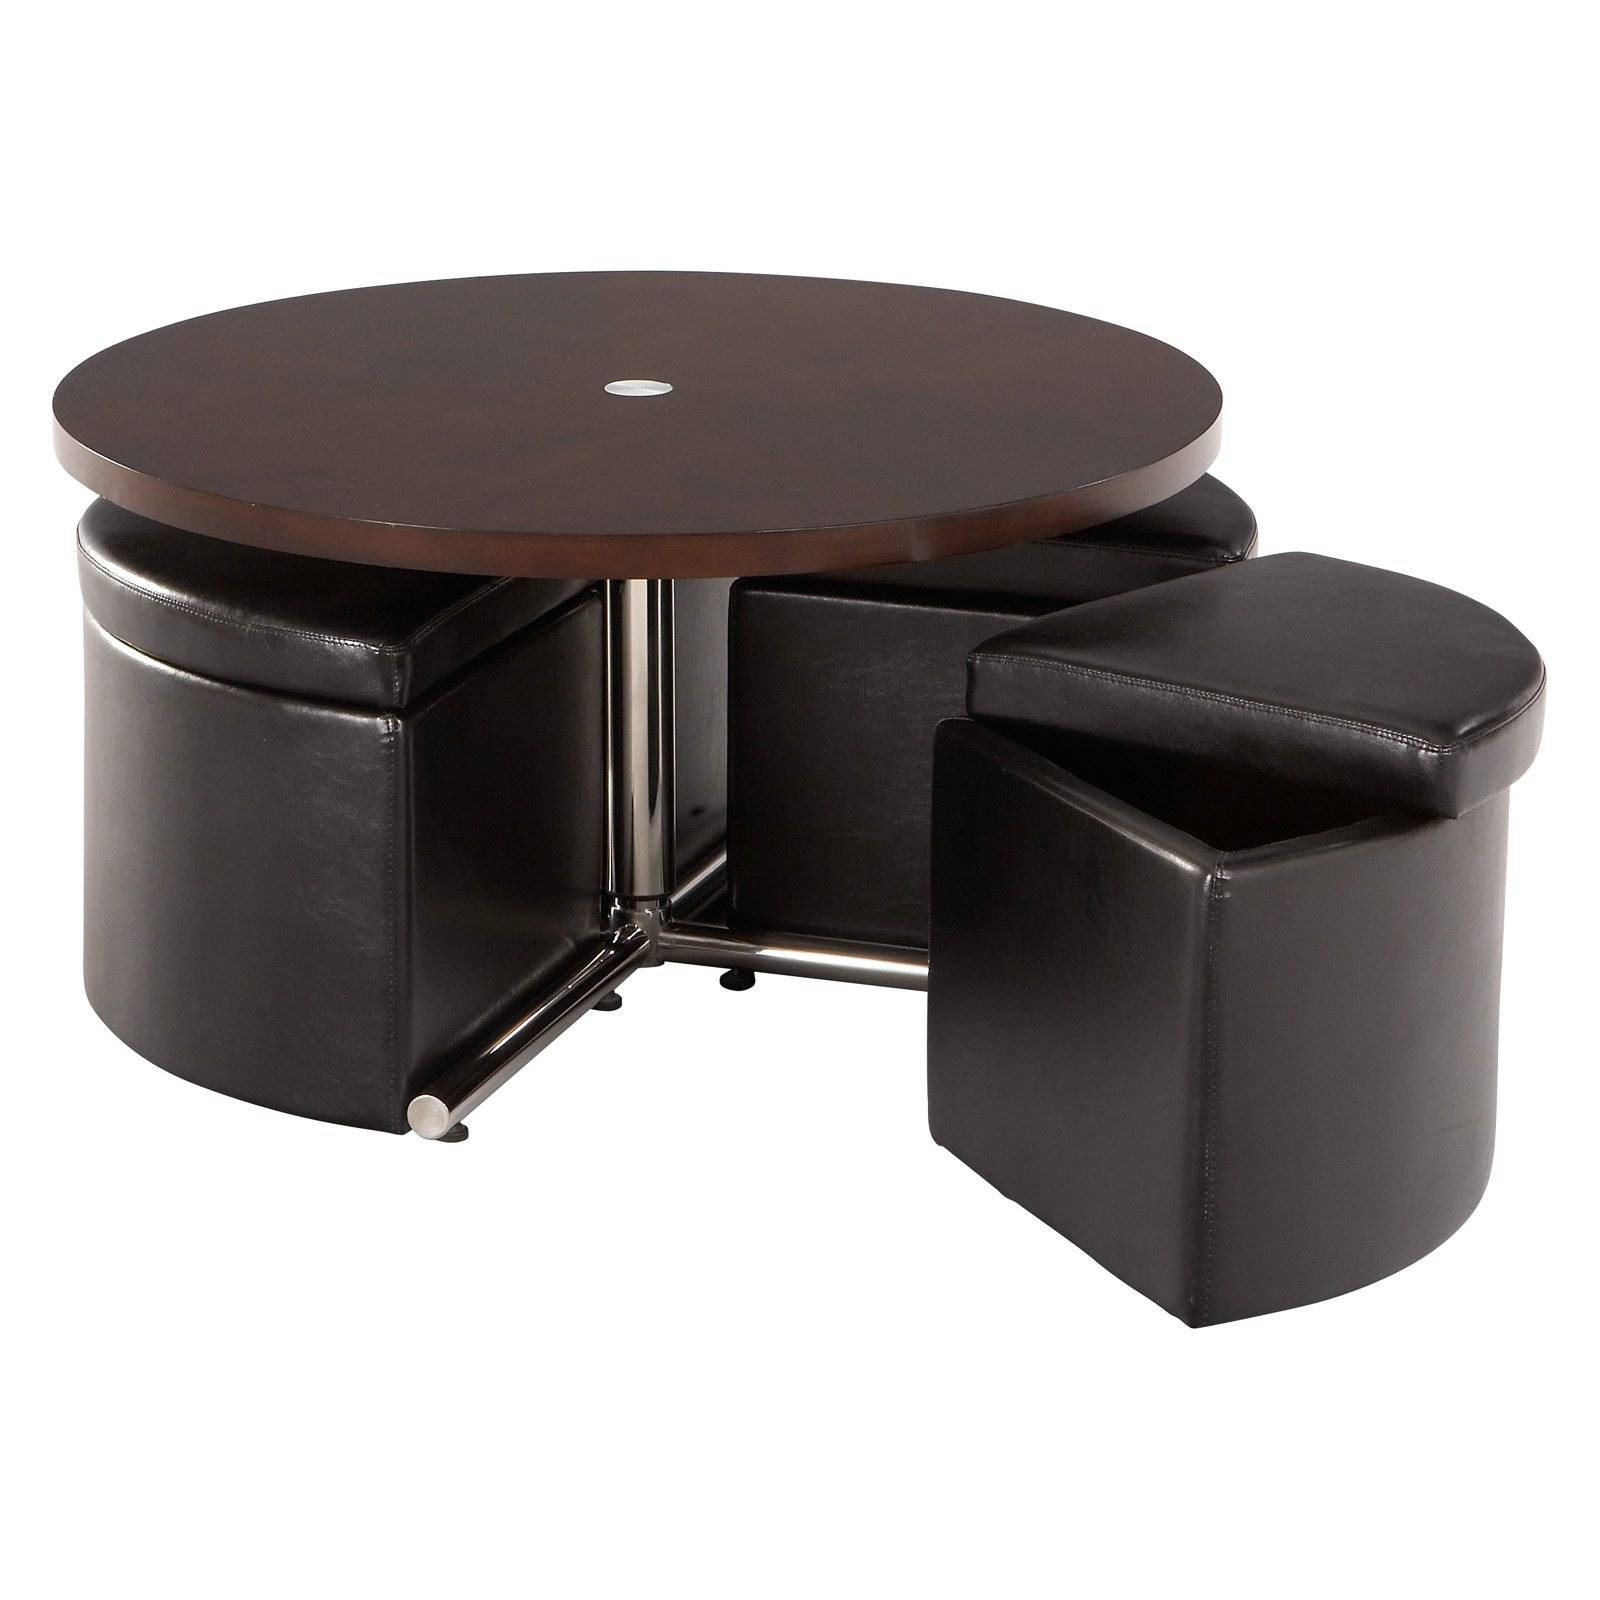 Round Coffee Table With 4 Storage Ottomans | Coffee Tables Decoration pertaining to Round Coffee Table Storages (Image 23 of 30)